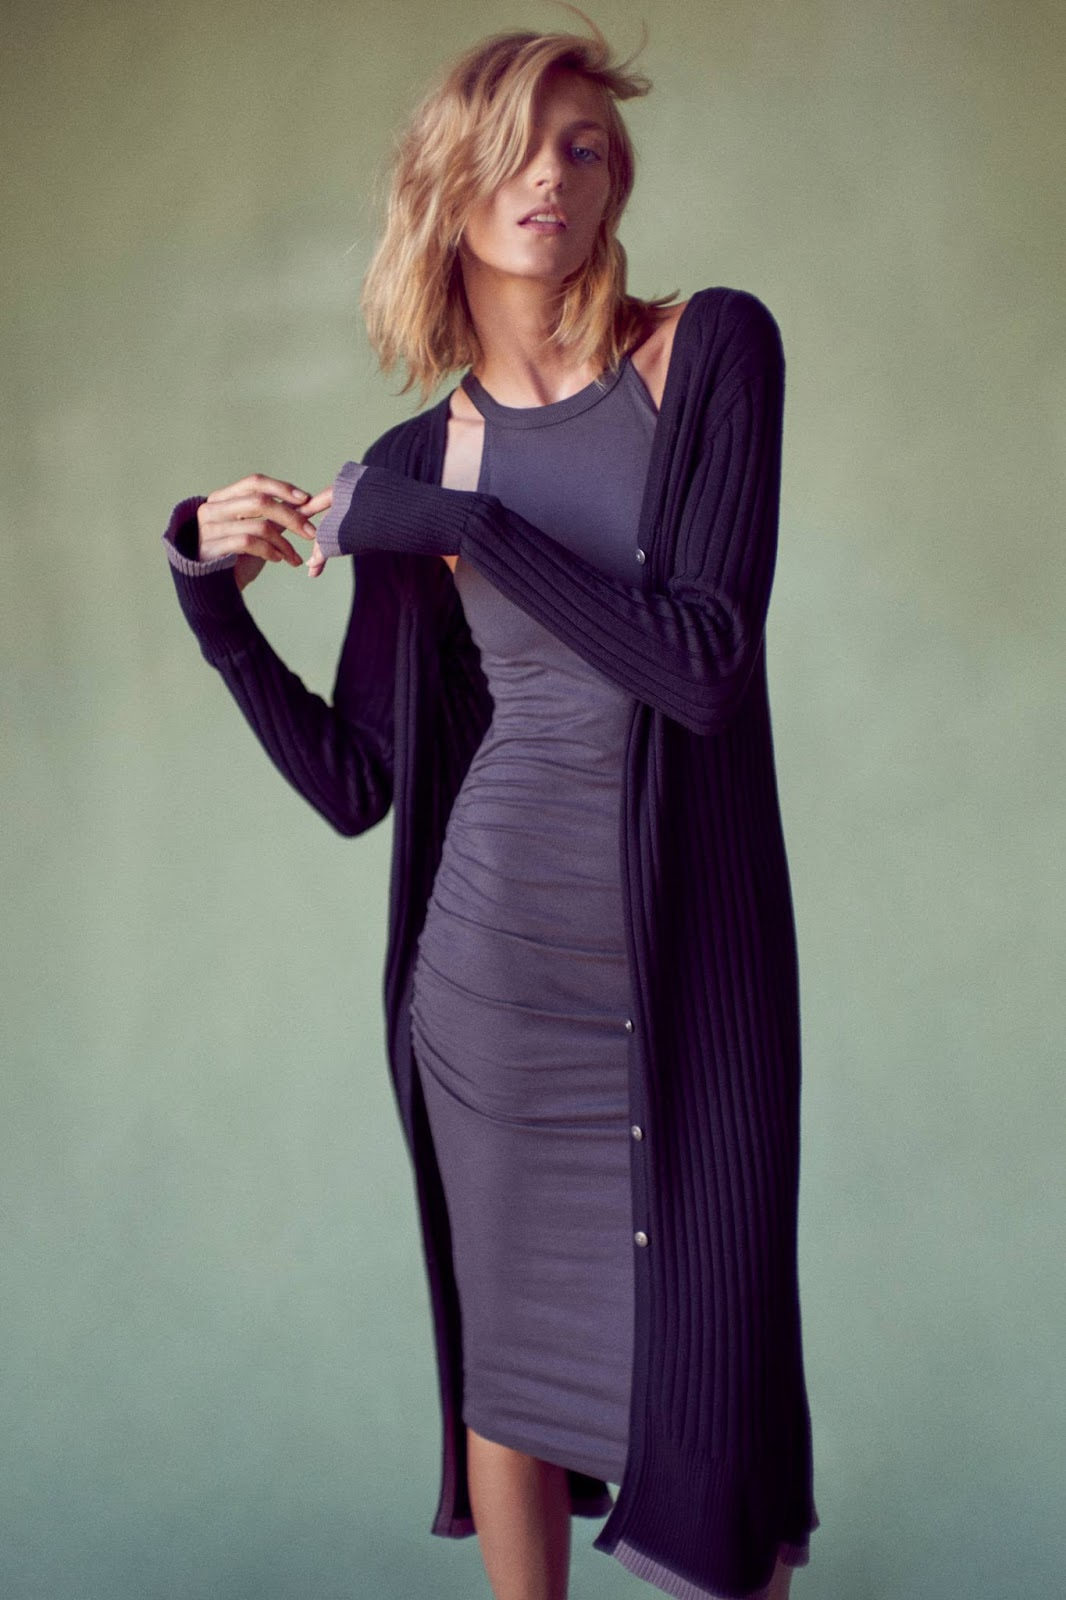 a5ce7a68305a Investigating Anthropologie's new arrivals | Effortlessly With Roxy